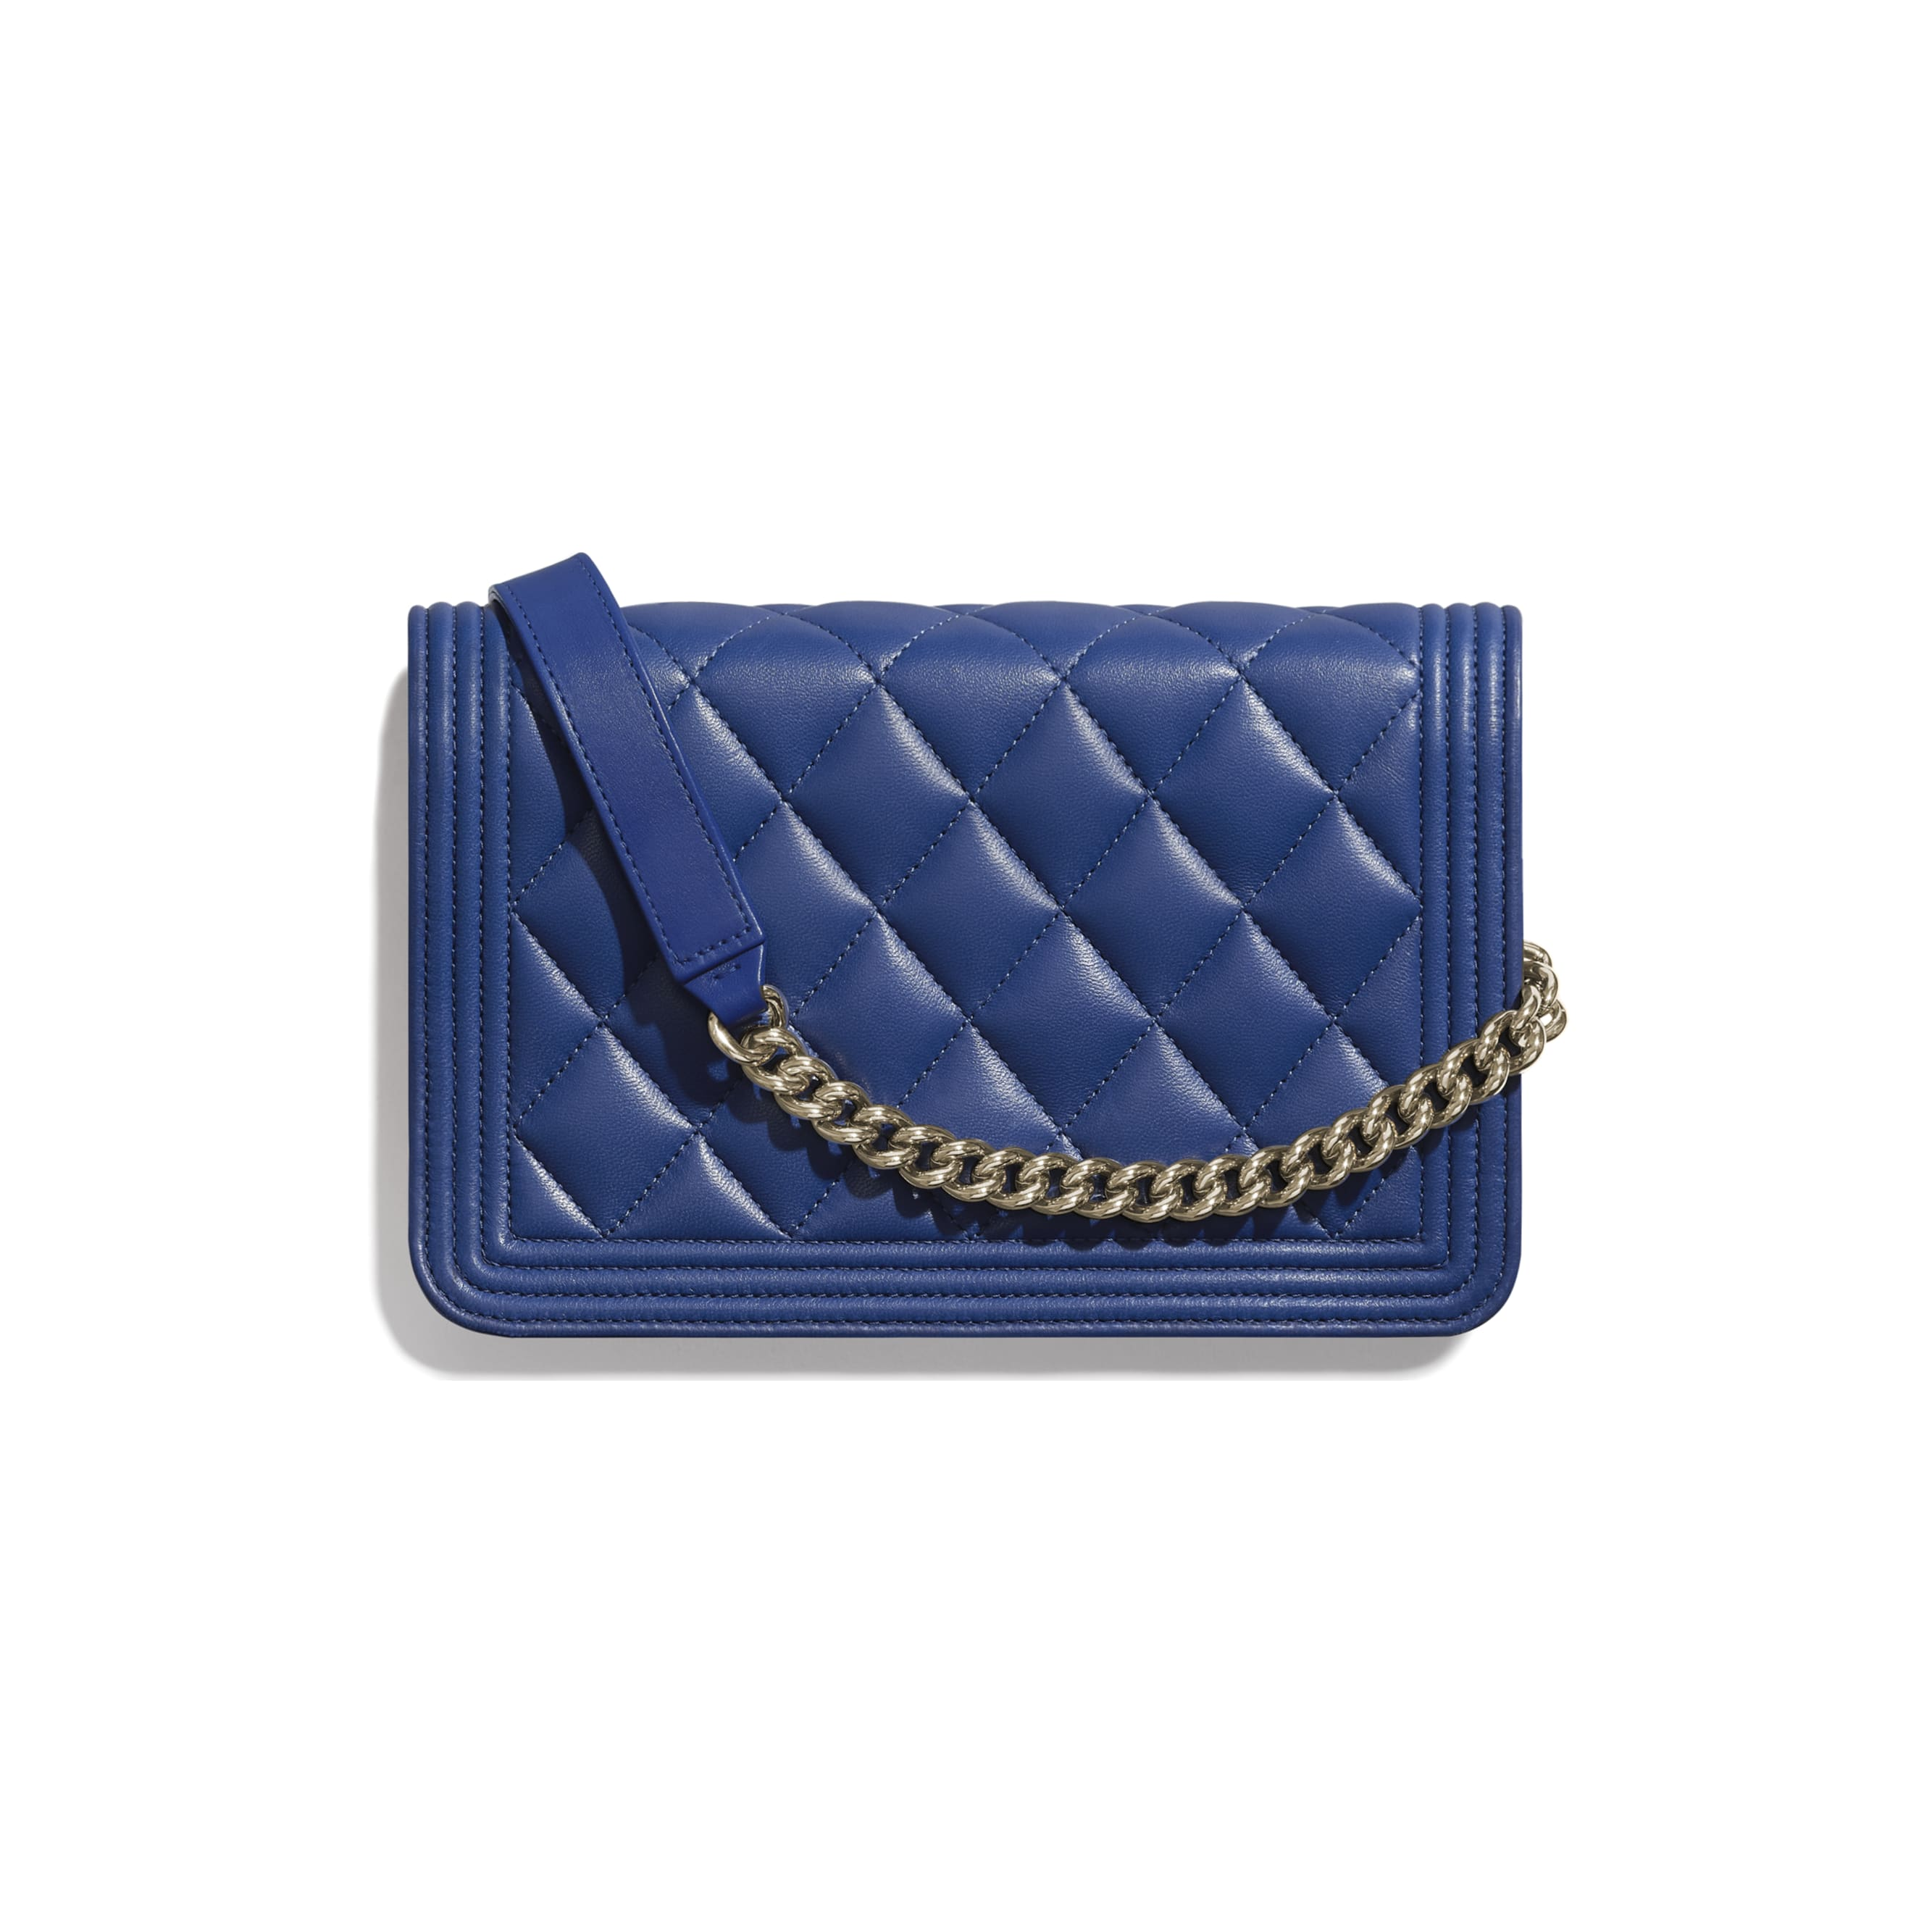 BOY CHANEL Wallet on Chain - Dark Blue - Lambskin & Gold-Tone Metal - CHANEL - Alternative view - see standard sized version